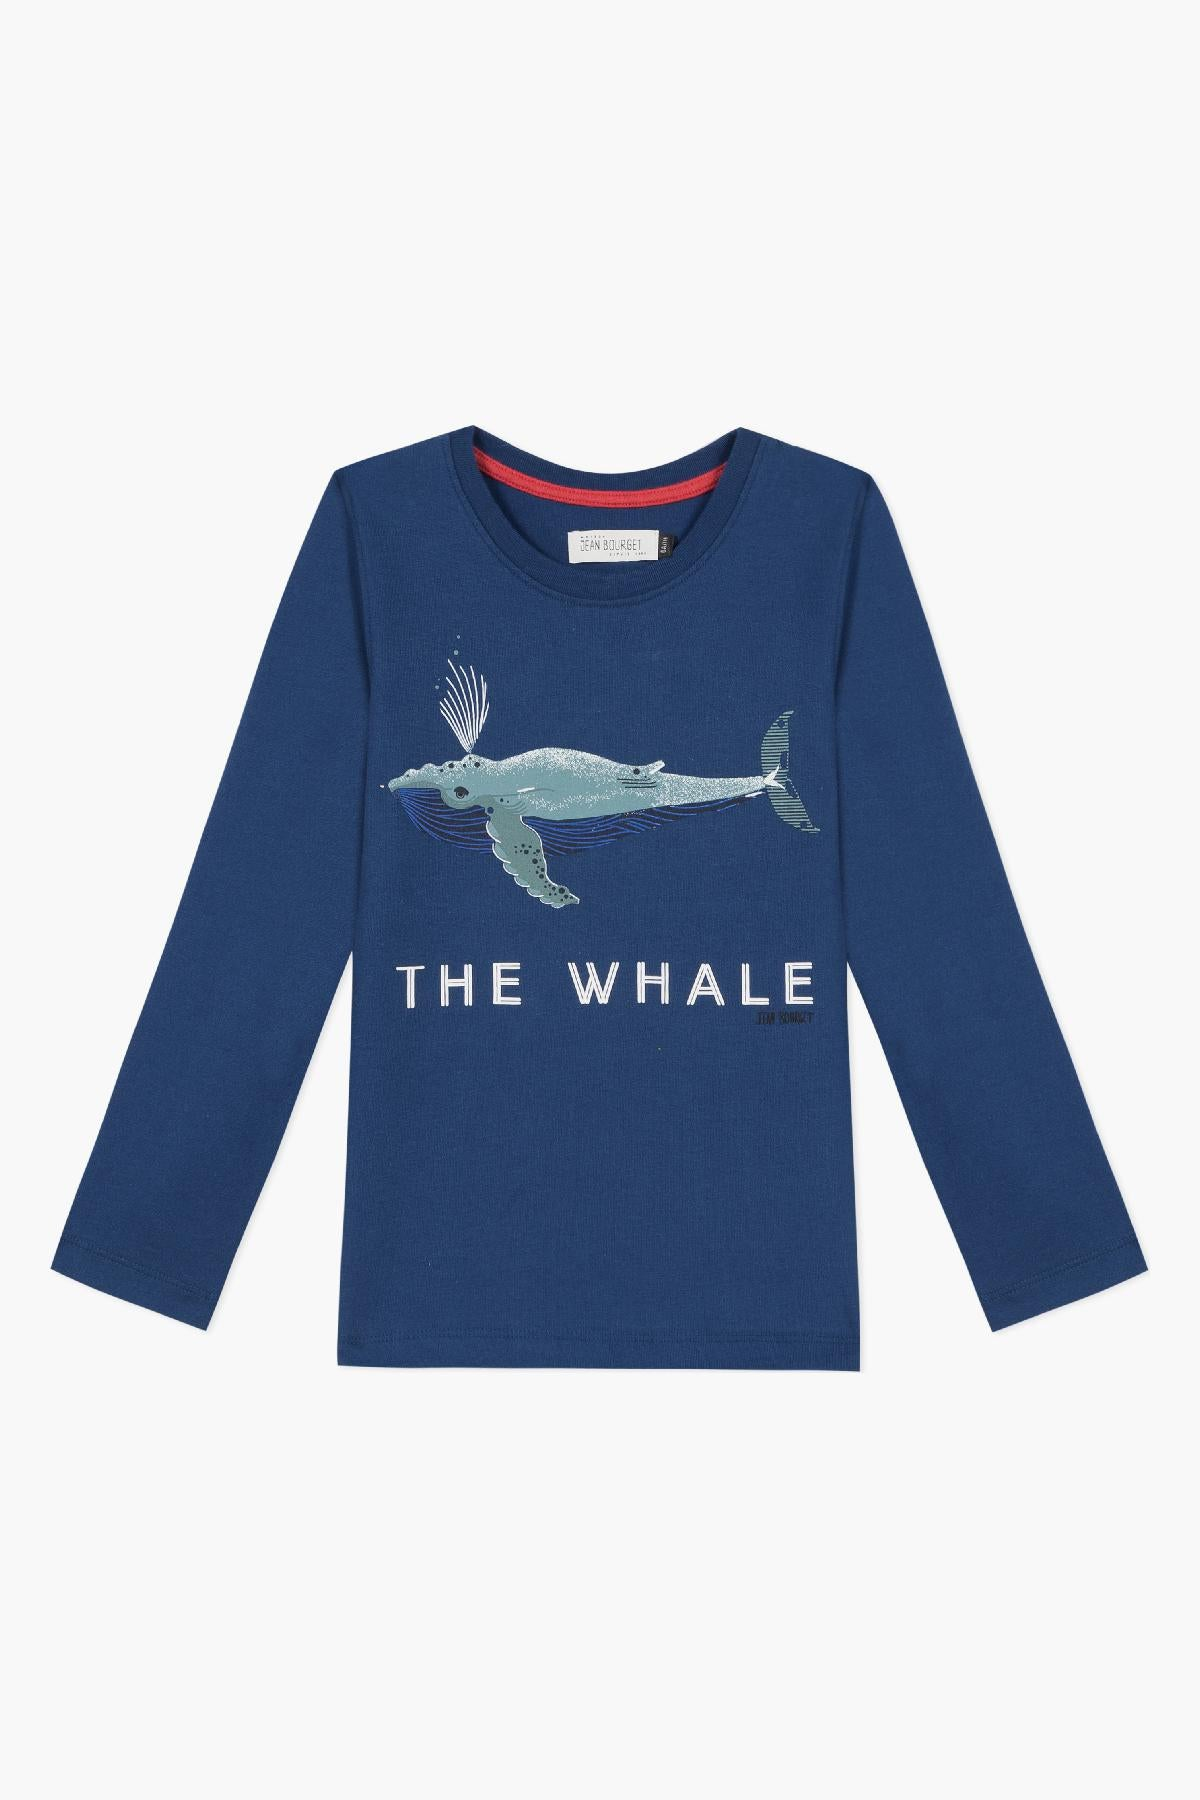 Jean Bourget Whale T-Shirt